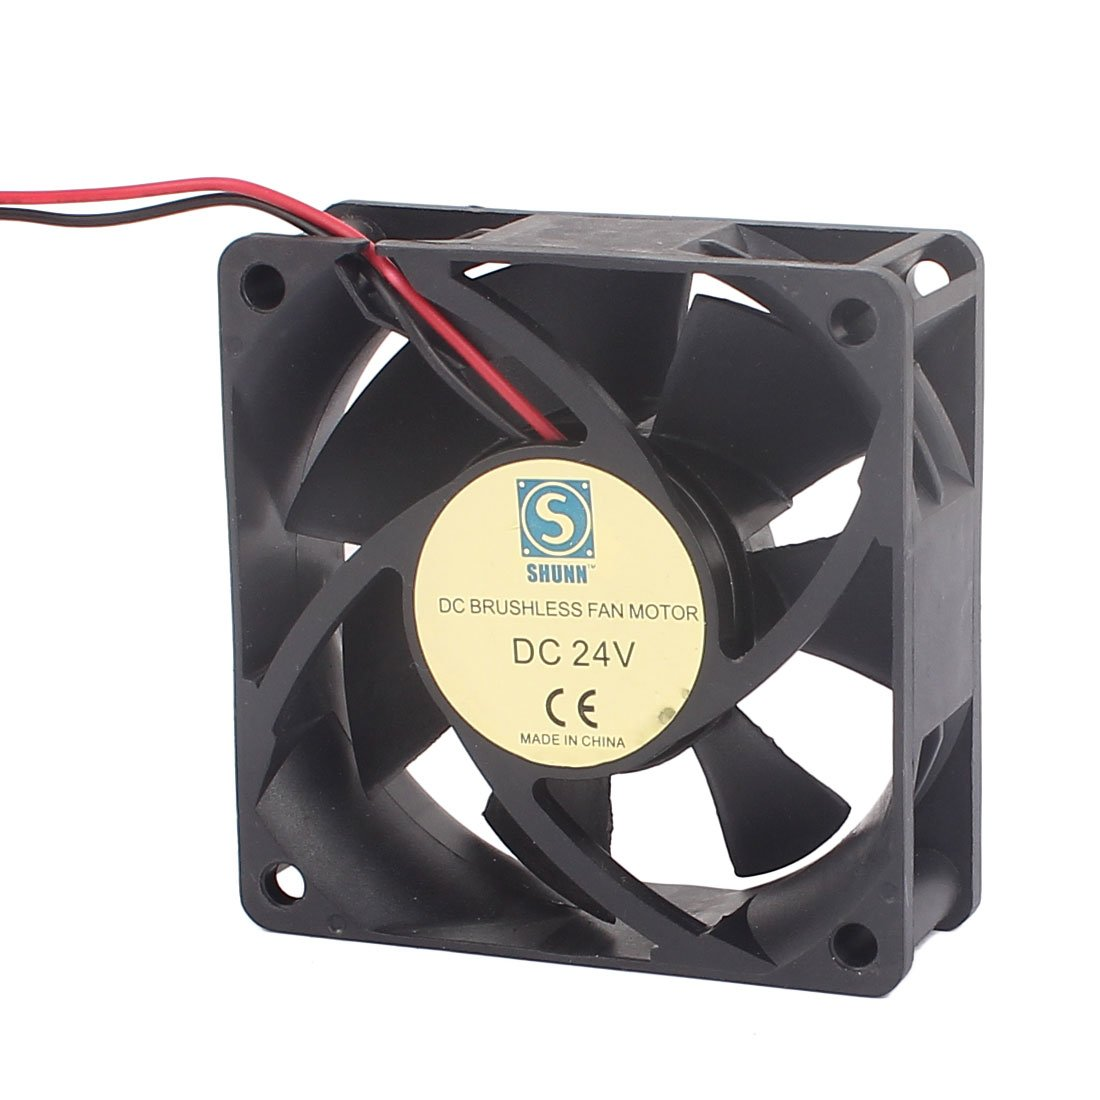 uxcell DC 24V 70mmx70mmx25mm Brushless 7 Vanes Cooling Case Fan Dual Ball